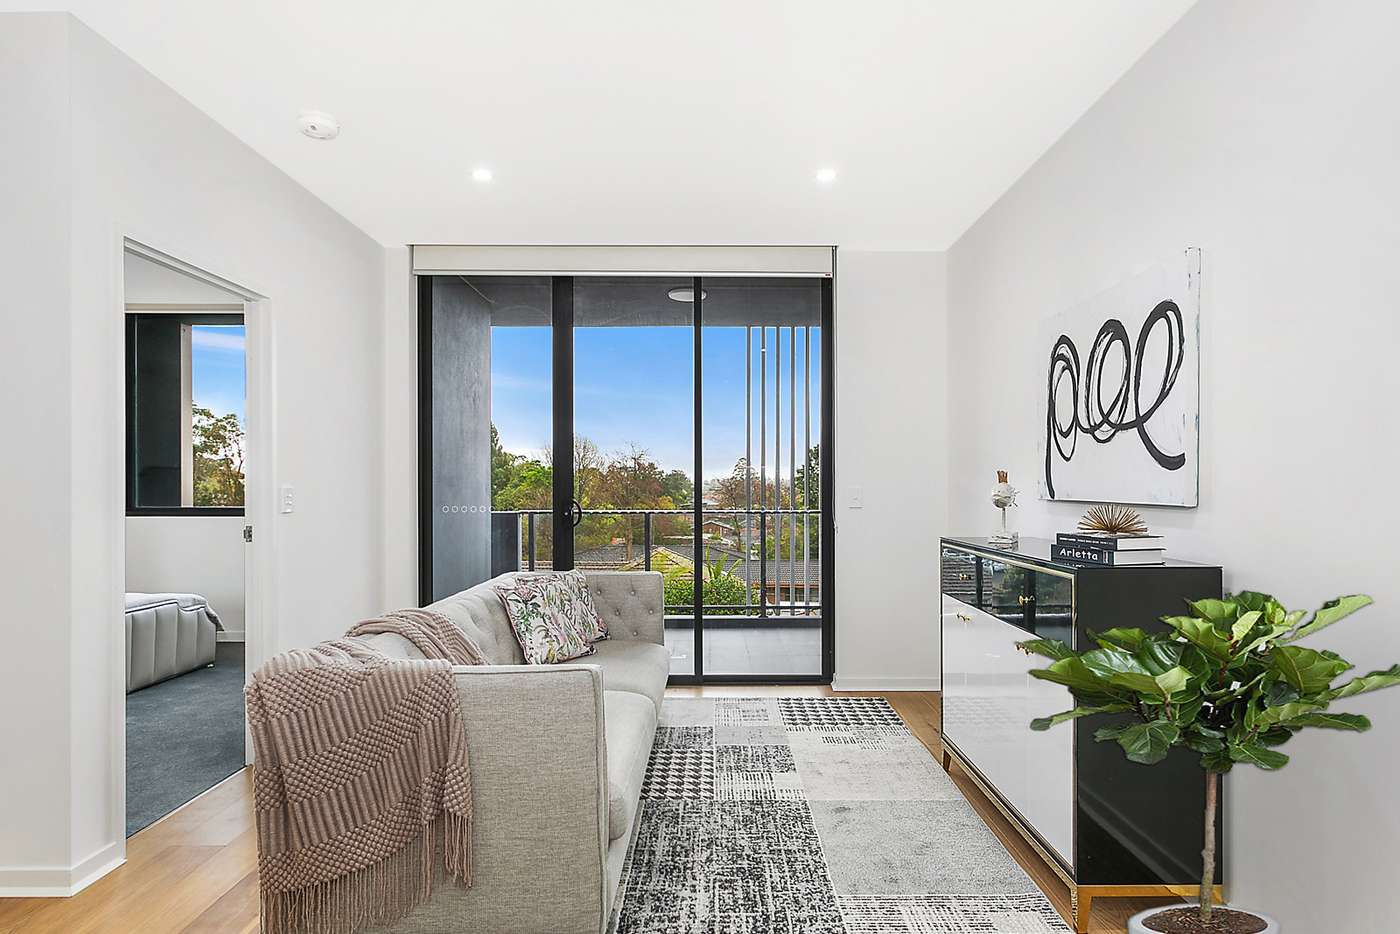 Main view of Homely apartment listing, 74/2 Lodge Street, Hornsby NSW 2077